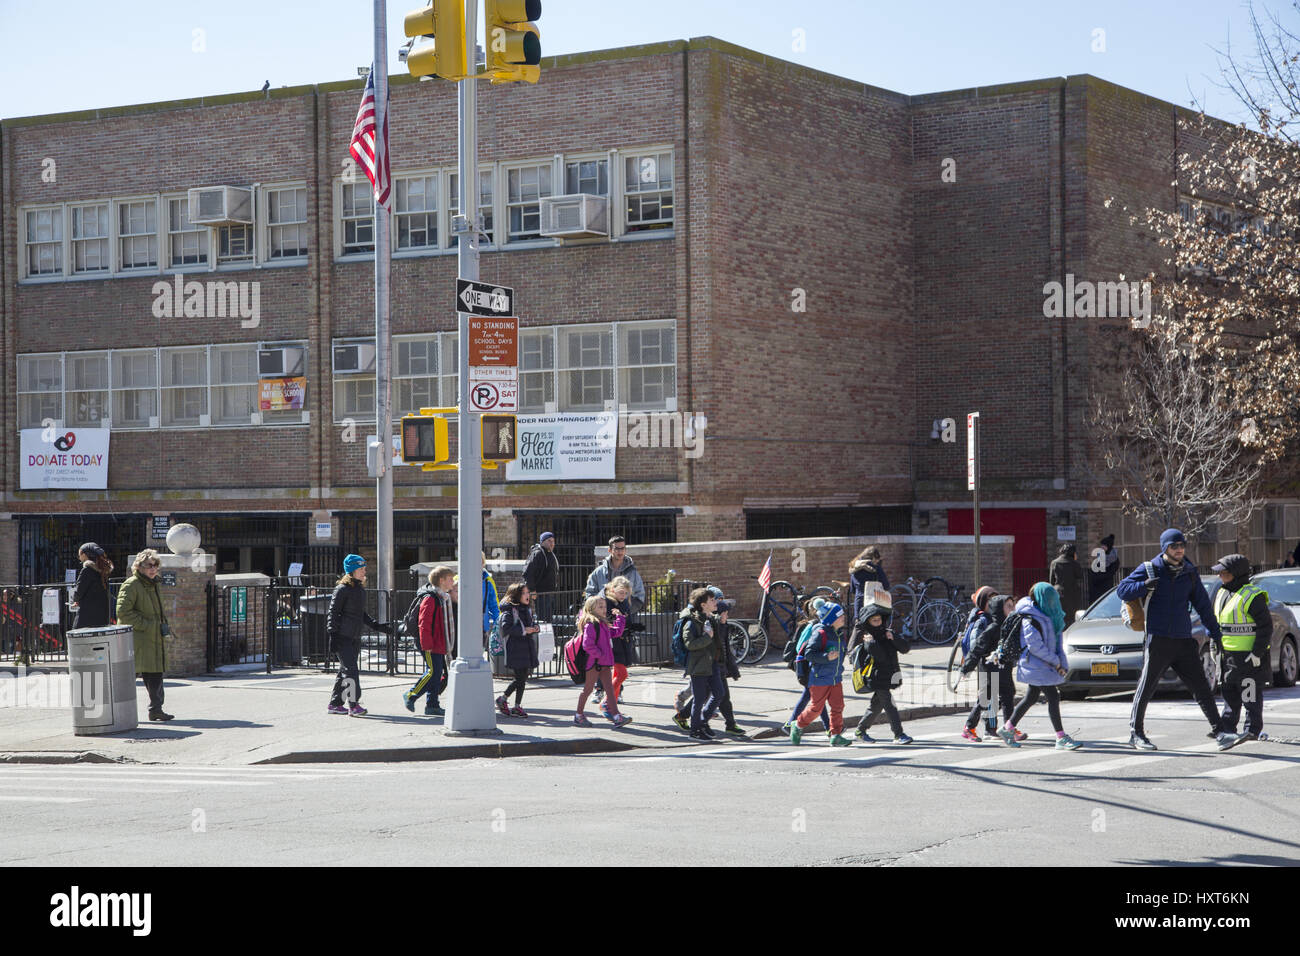 Children Going Home After School From PS 321 A Popular Elementary In The Park SLope Neighborhood Of Brooklyn NY